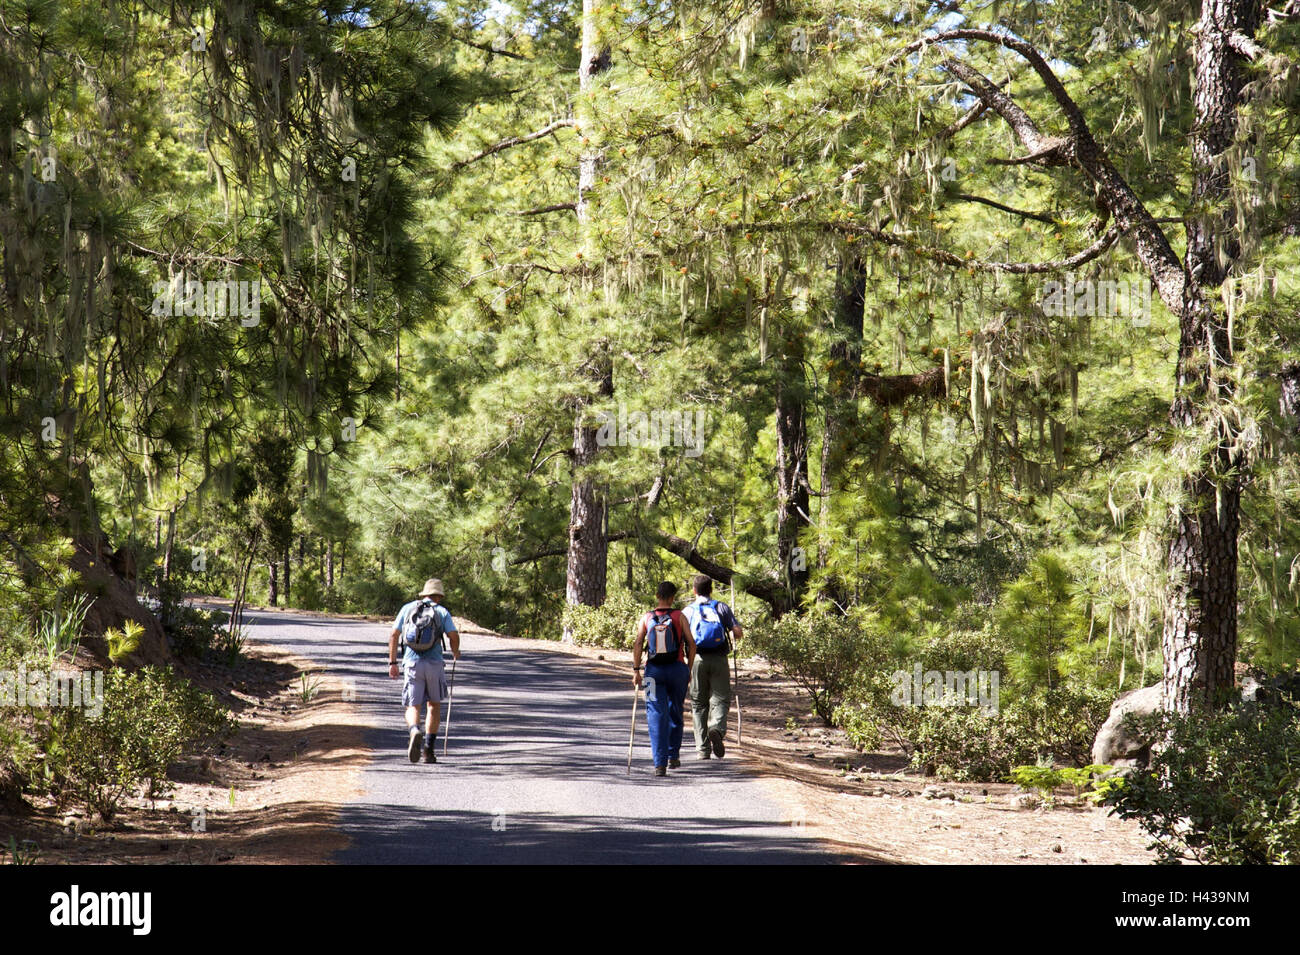 Spain, Canary islands, grain Canaria, inland, woodland Tamadaba, wanderer, - Stock Image